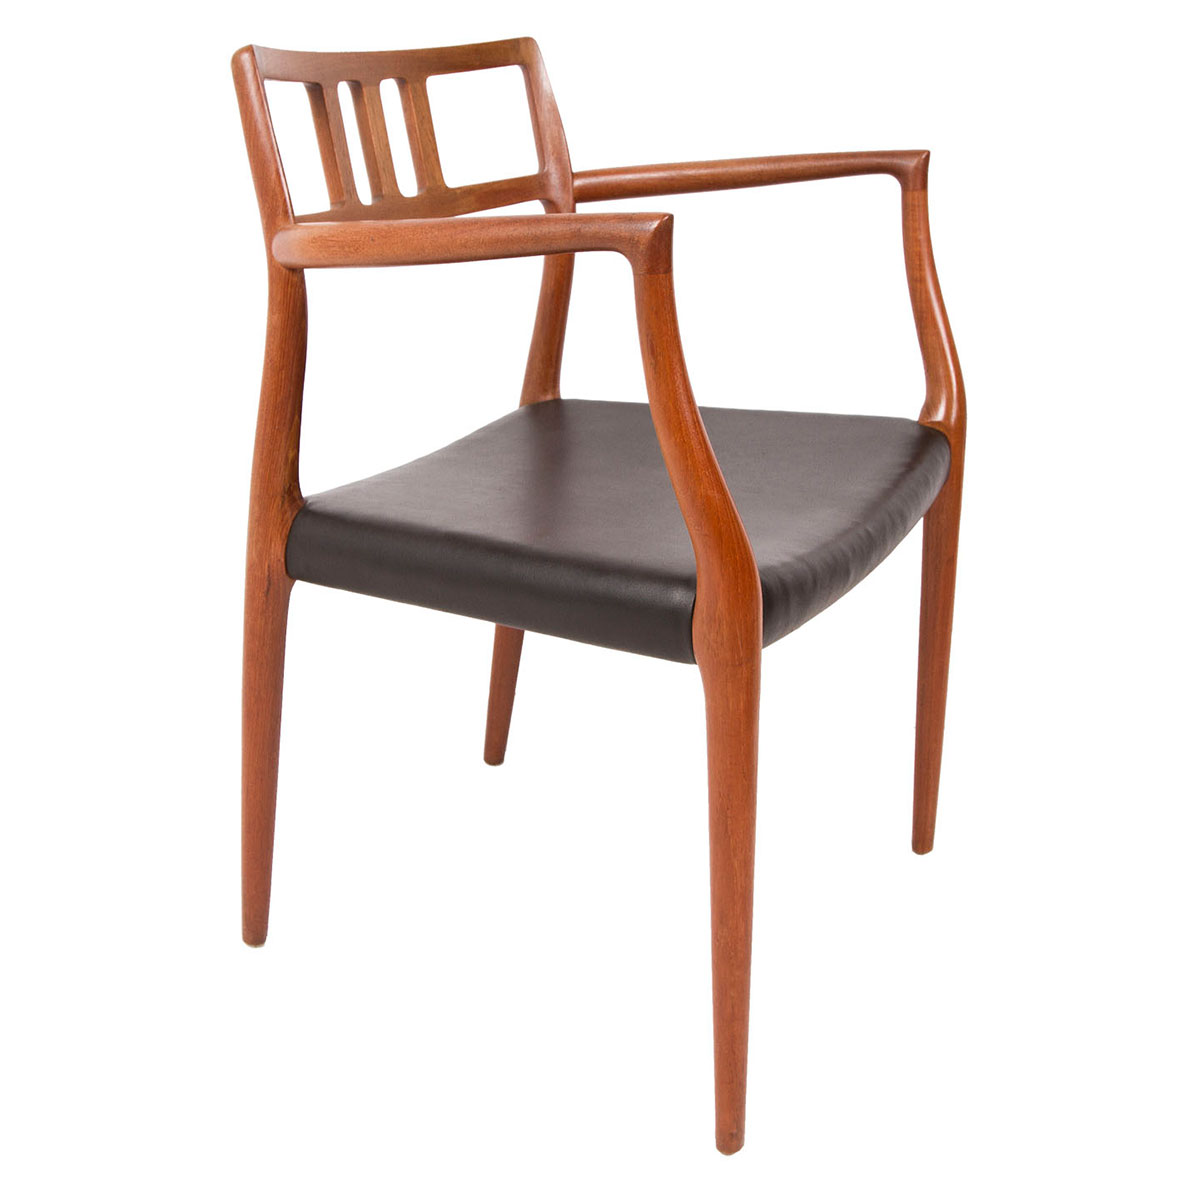 Set of 6 Danish Teak (#64 & #79) Niels Møller Dining Chairs